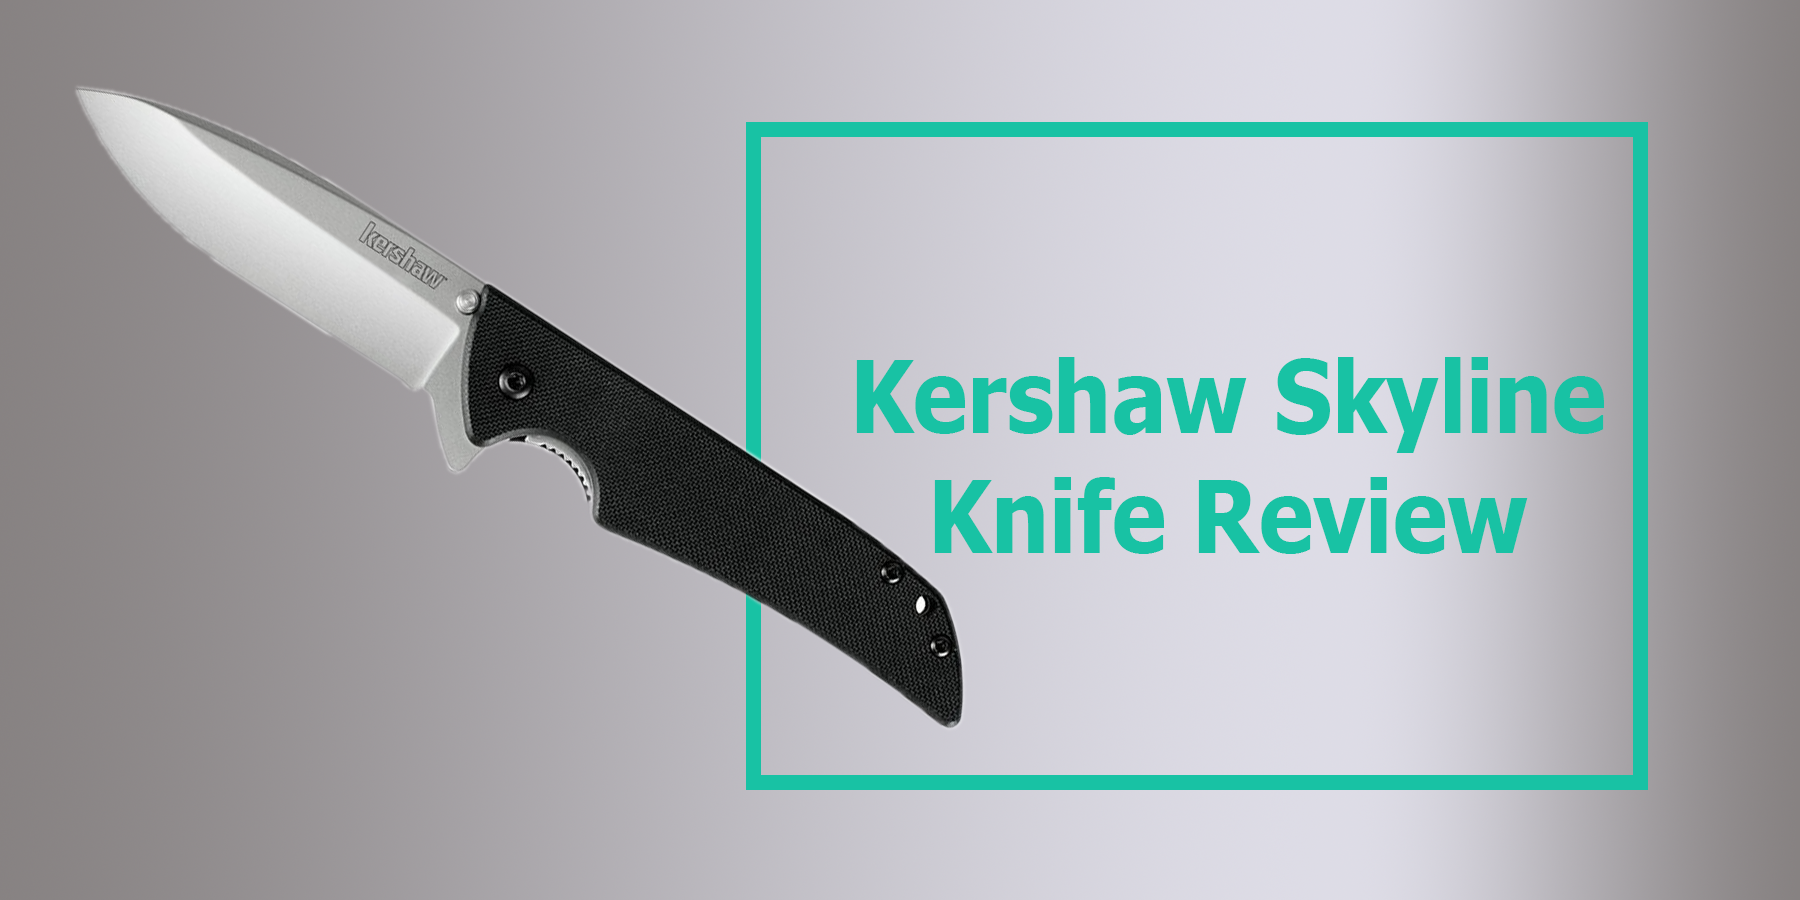 Kershaw Skyline Knife Review